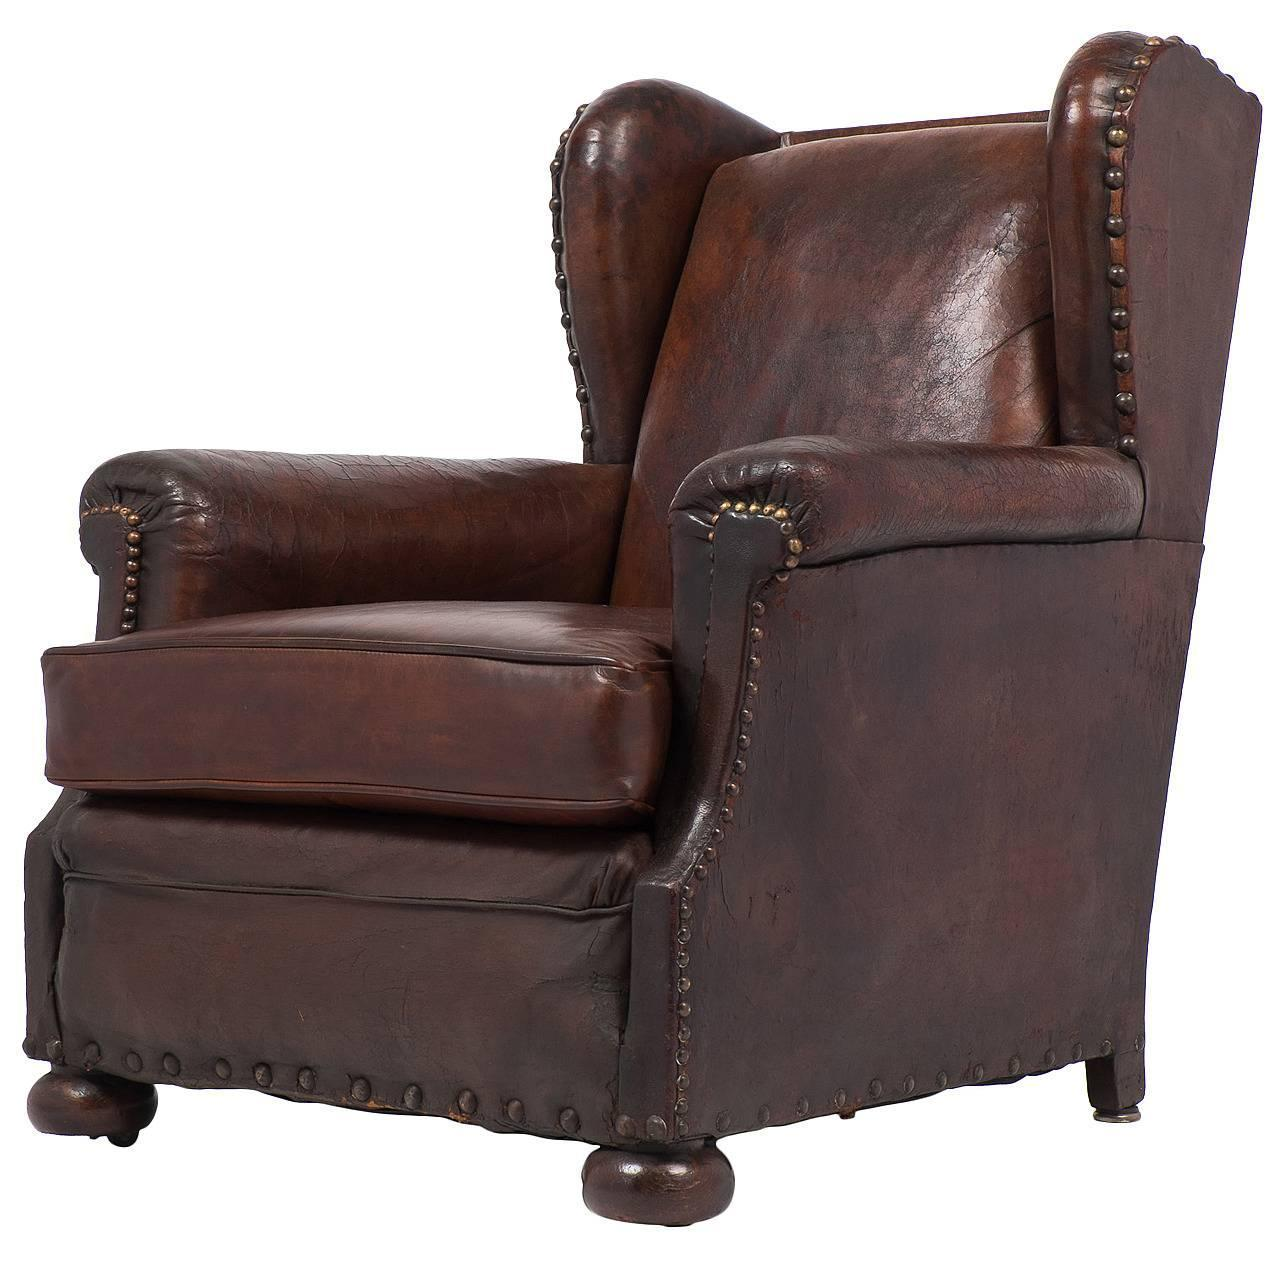 Leather Club Chair French Vintage Wingback Leather Club Chair At 1stdibs